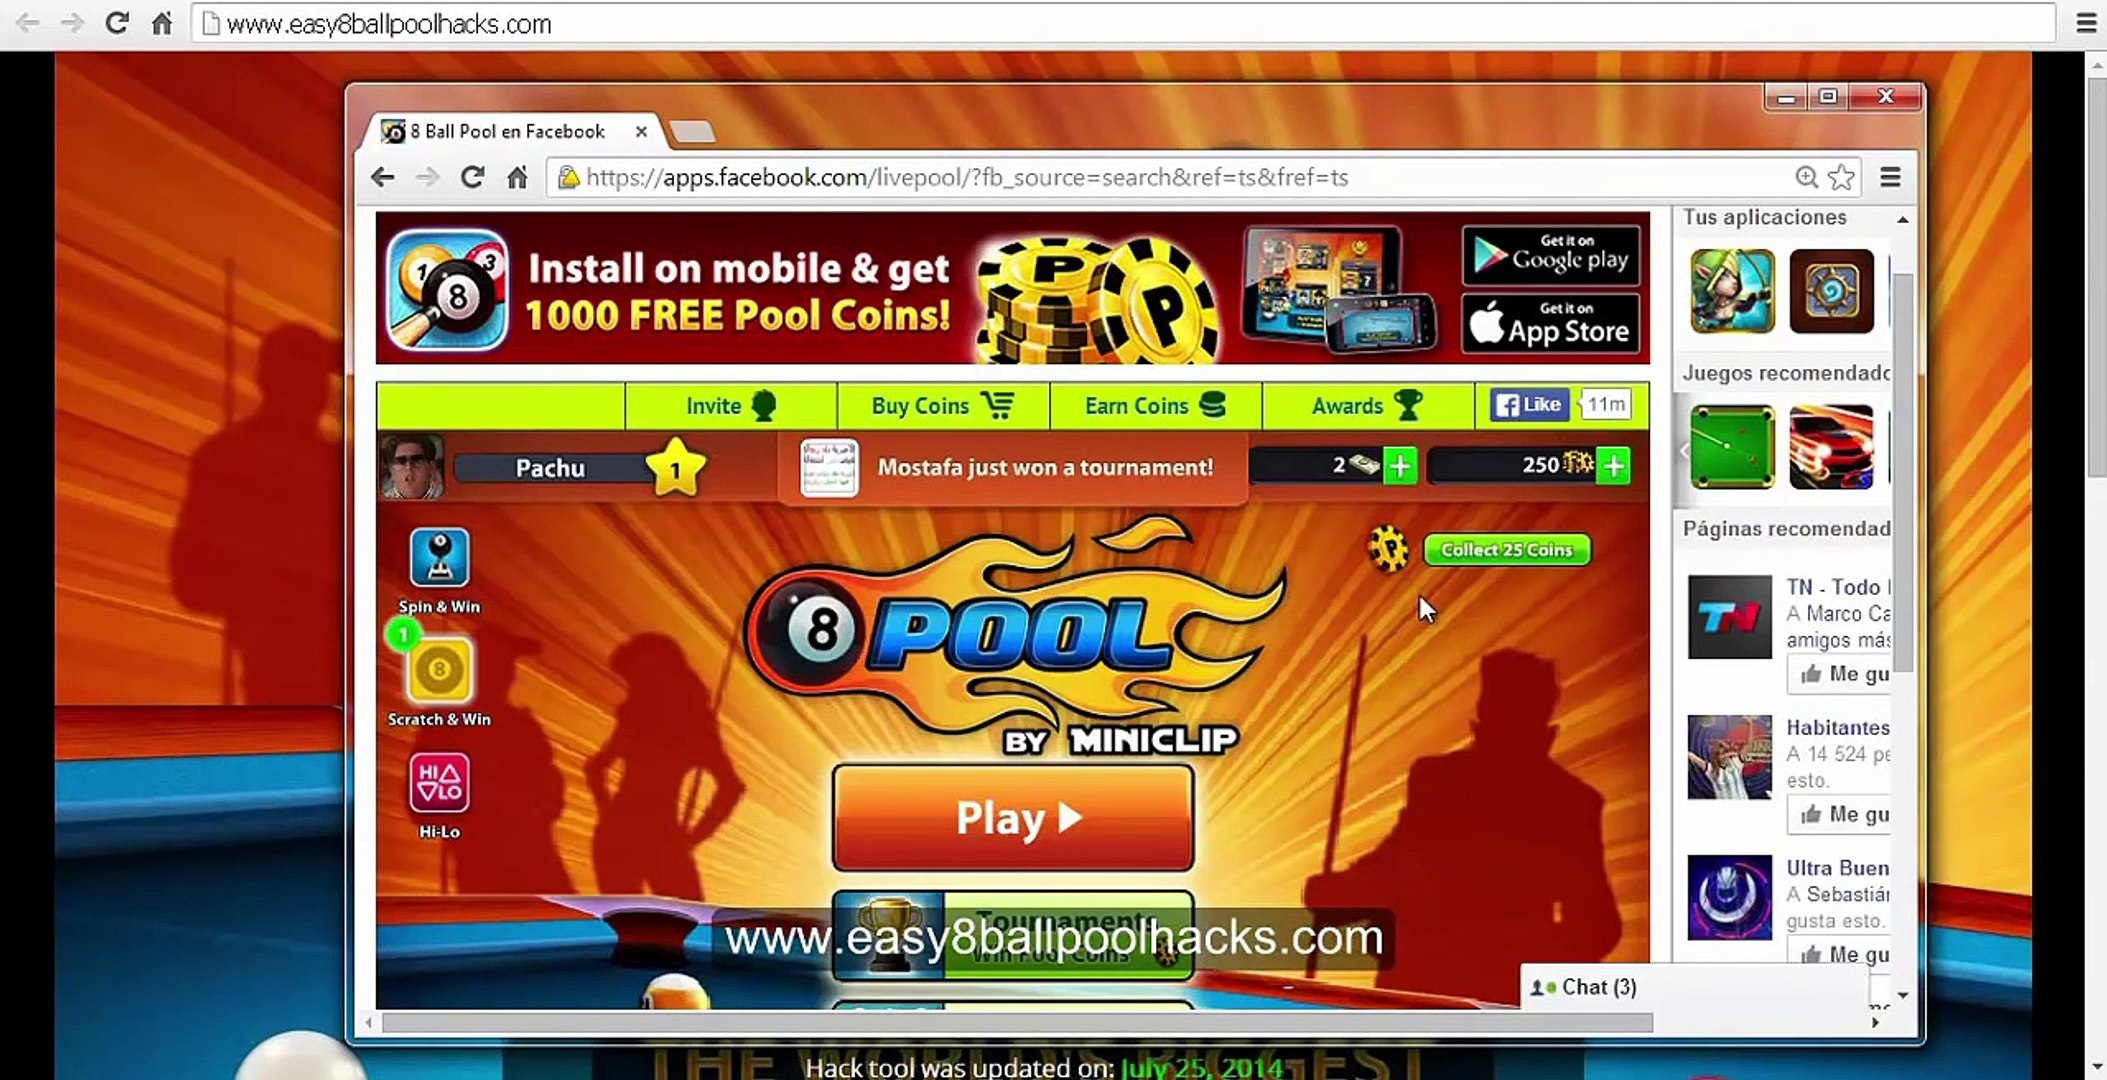 8 Ball Pool Generator App how to get unlimited coins and cash in 8 ball pool kickass proof video